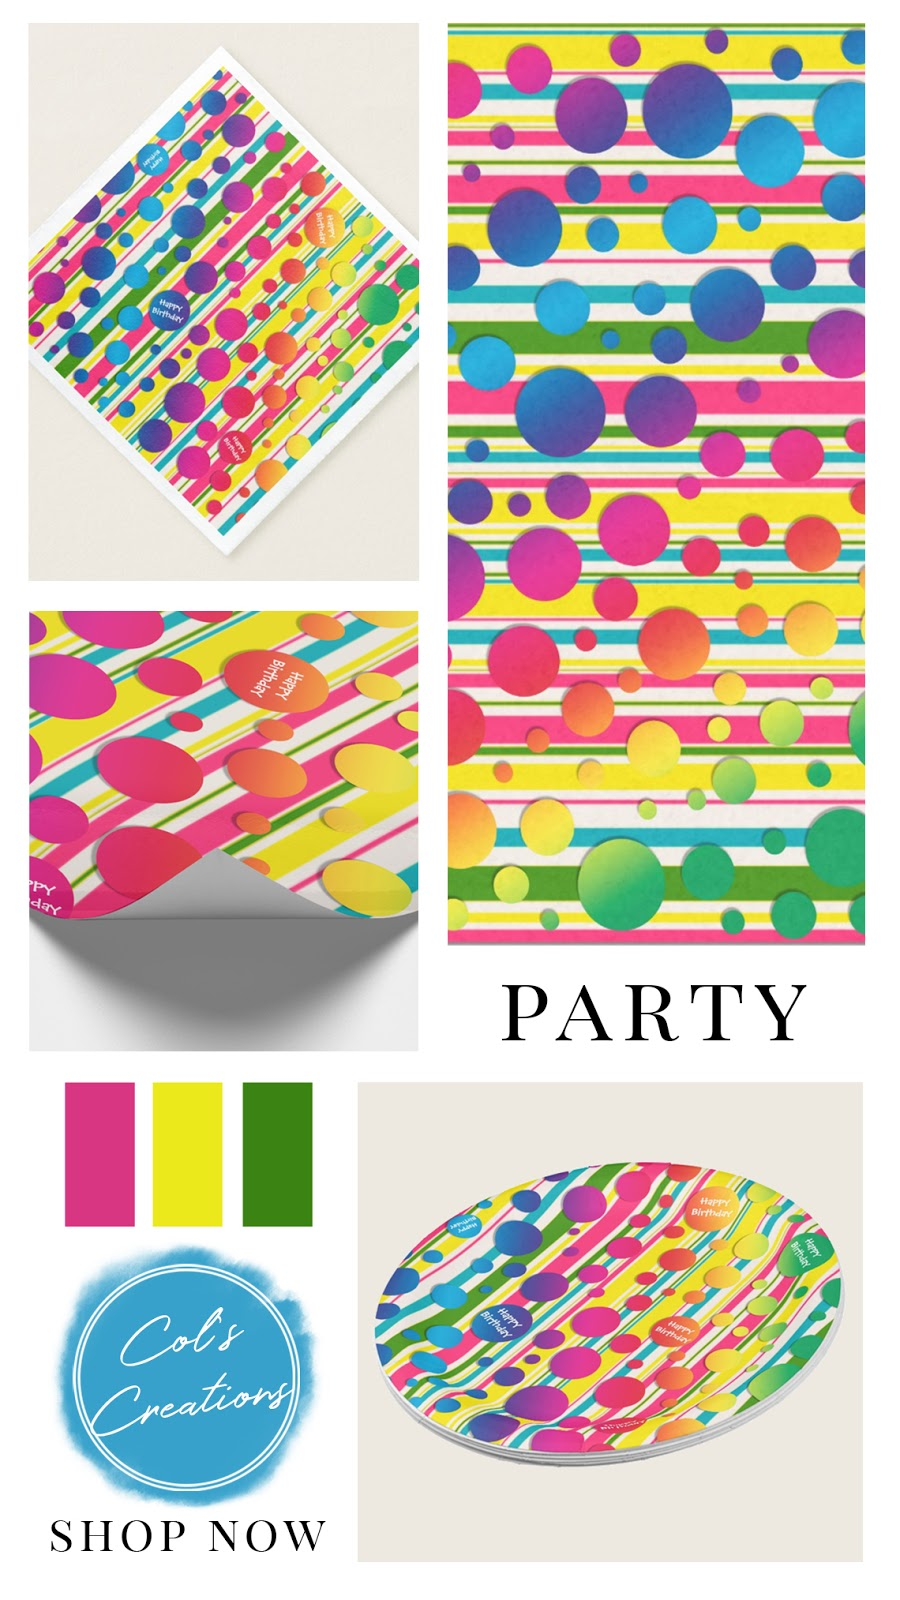 Neon bubble dots and stripes in rainbow colors. Birthday party collection including napkins, paper plates, gift wrap, and tissue paper. Neon yellow, pink, green, and blue color palette.